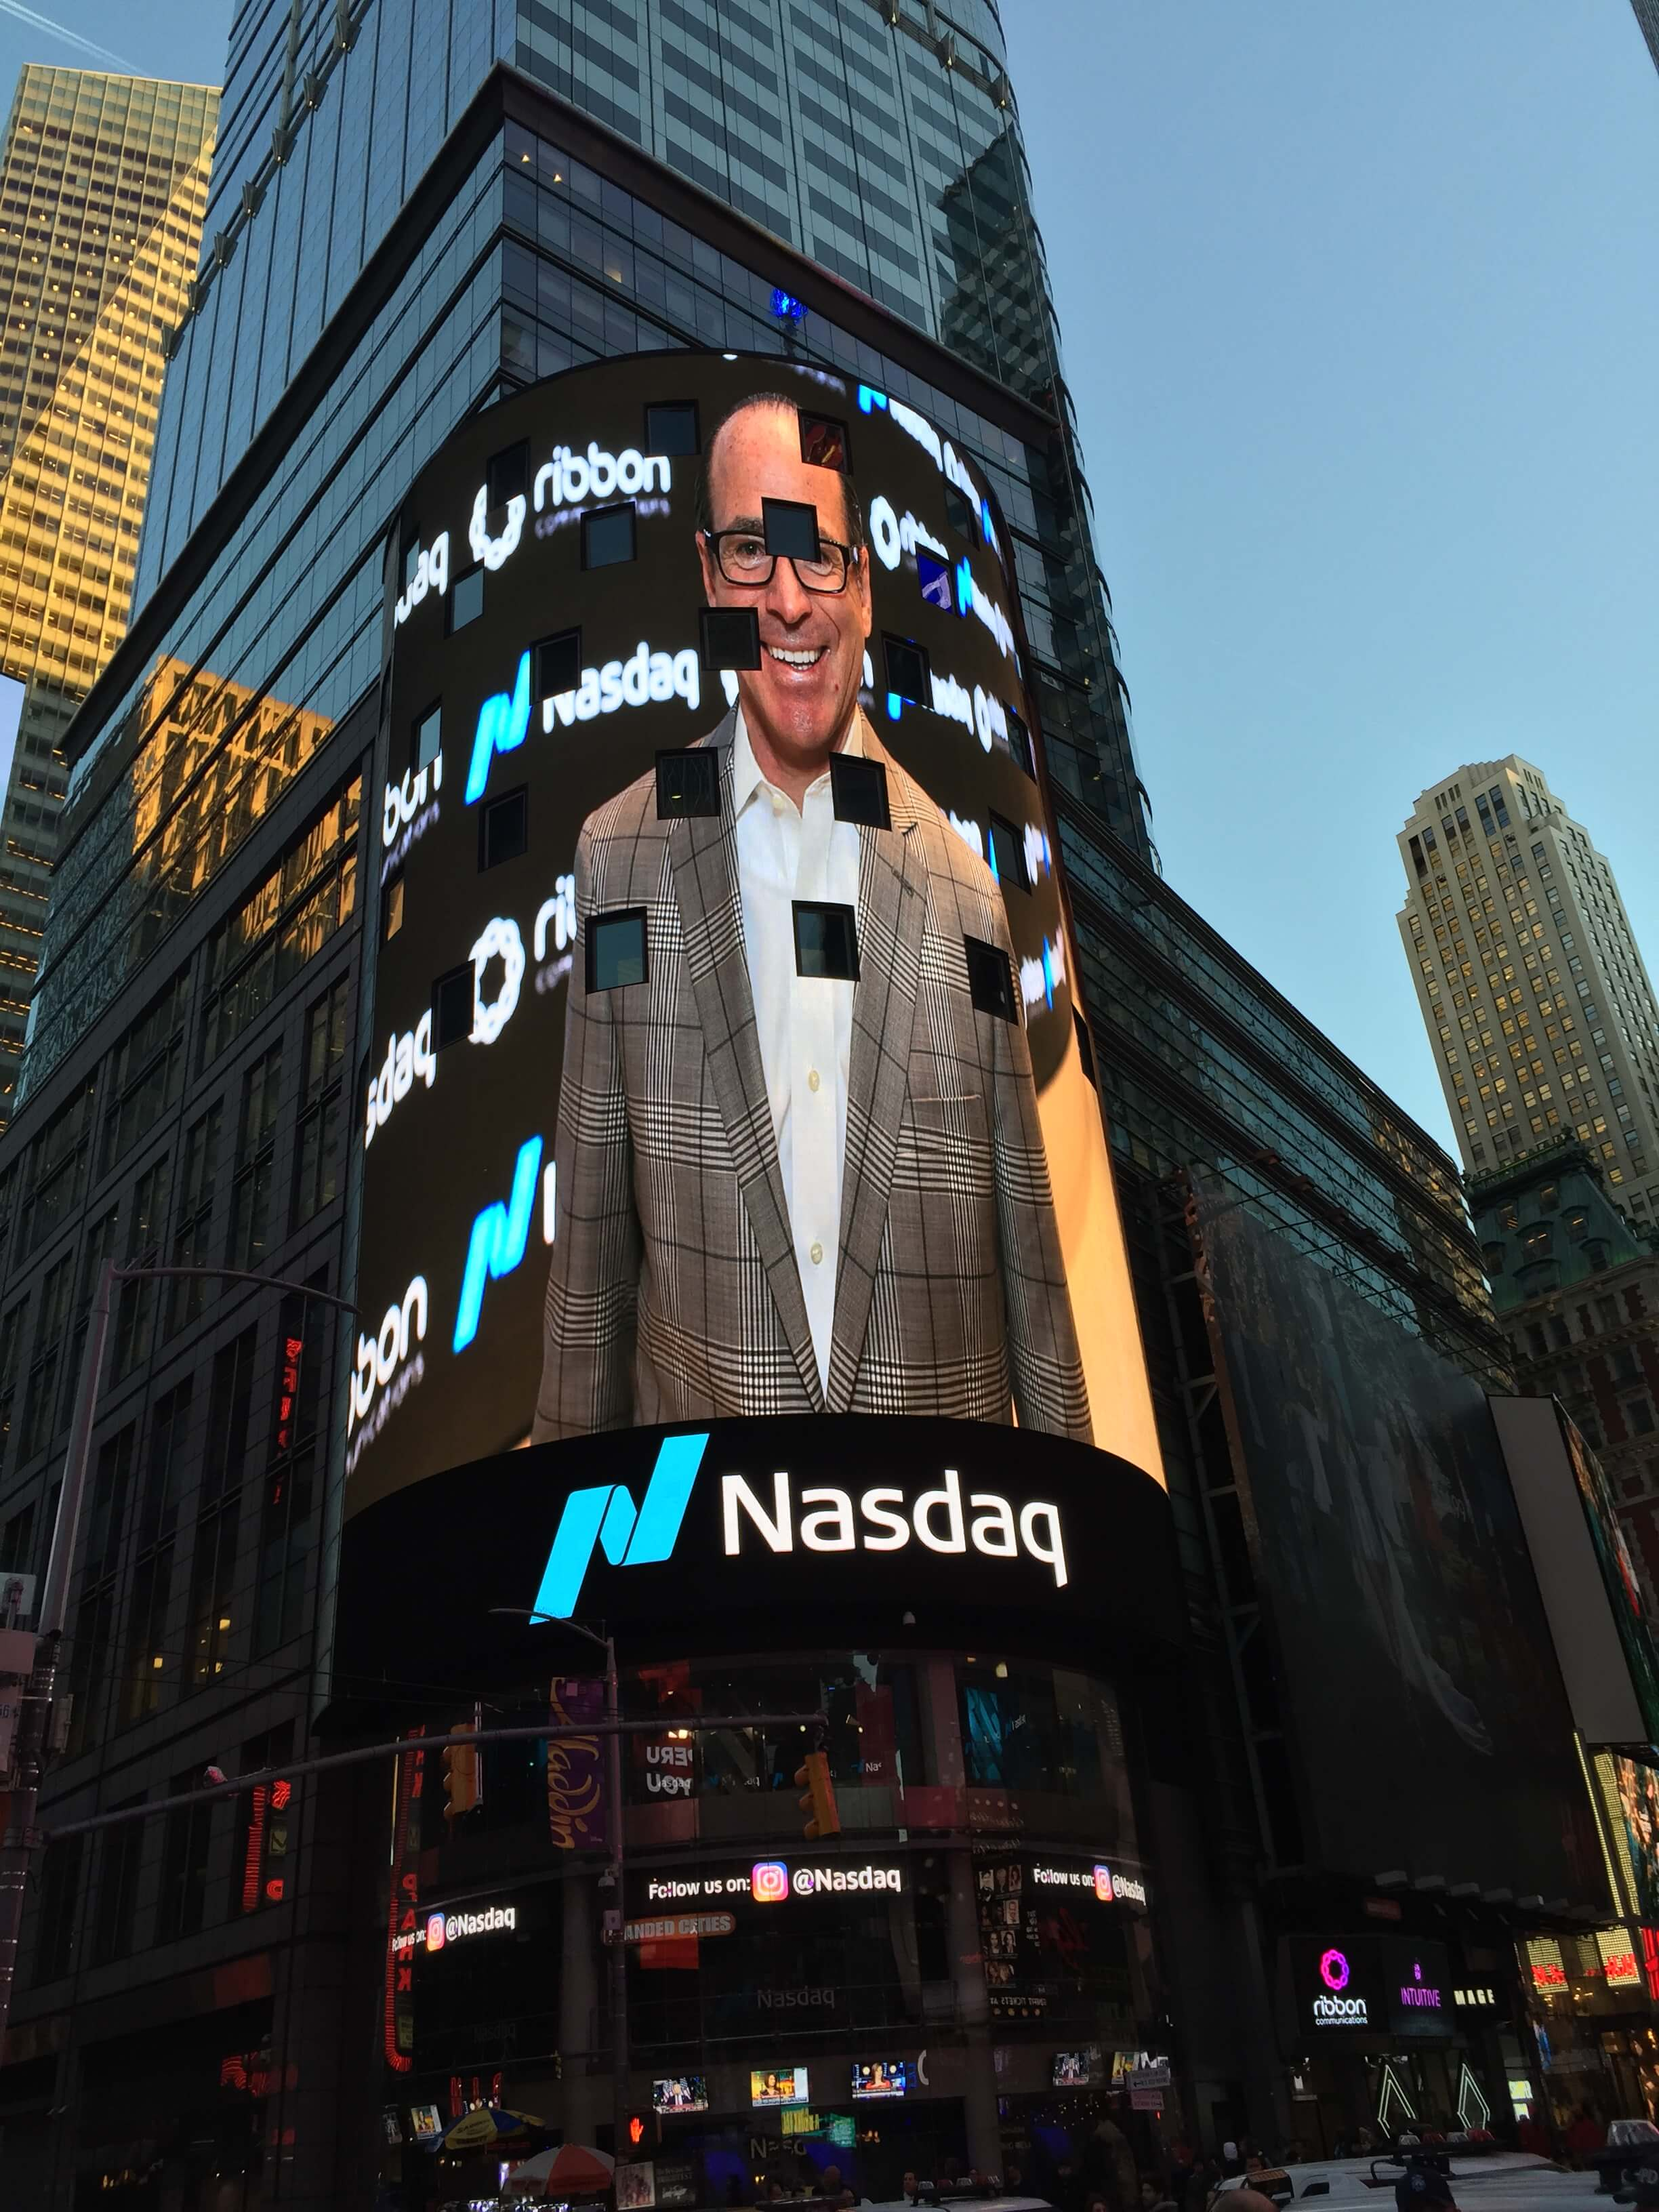 David Walsh, Bronxville NY native in Times Square on the Nasdaq